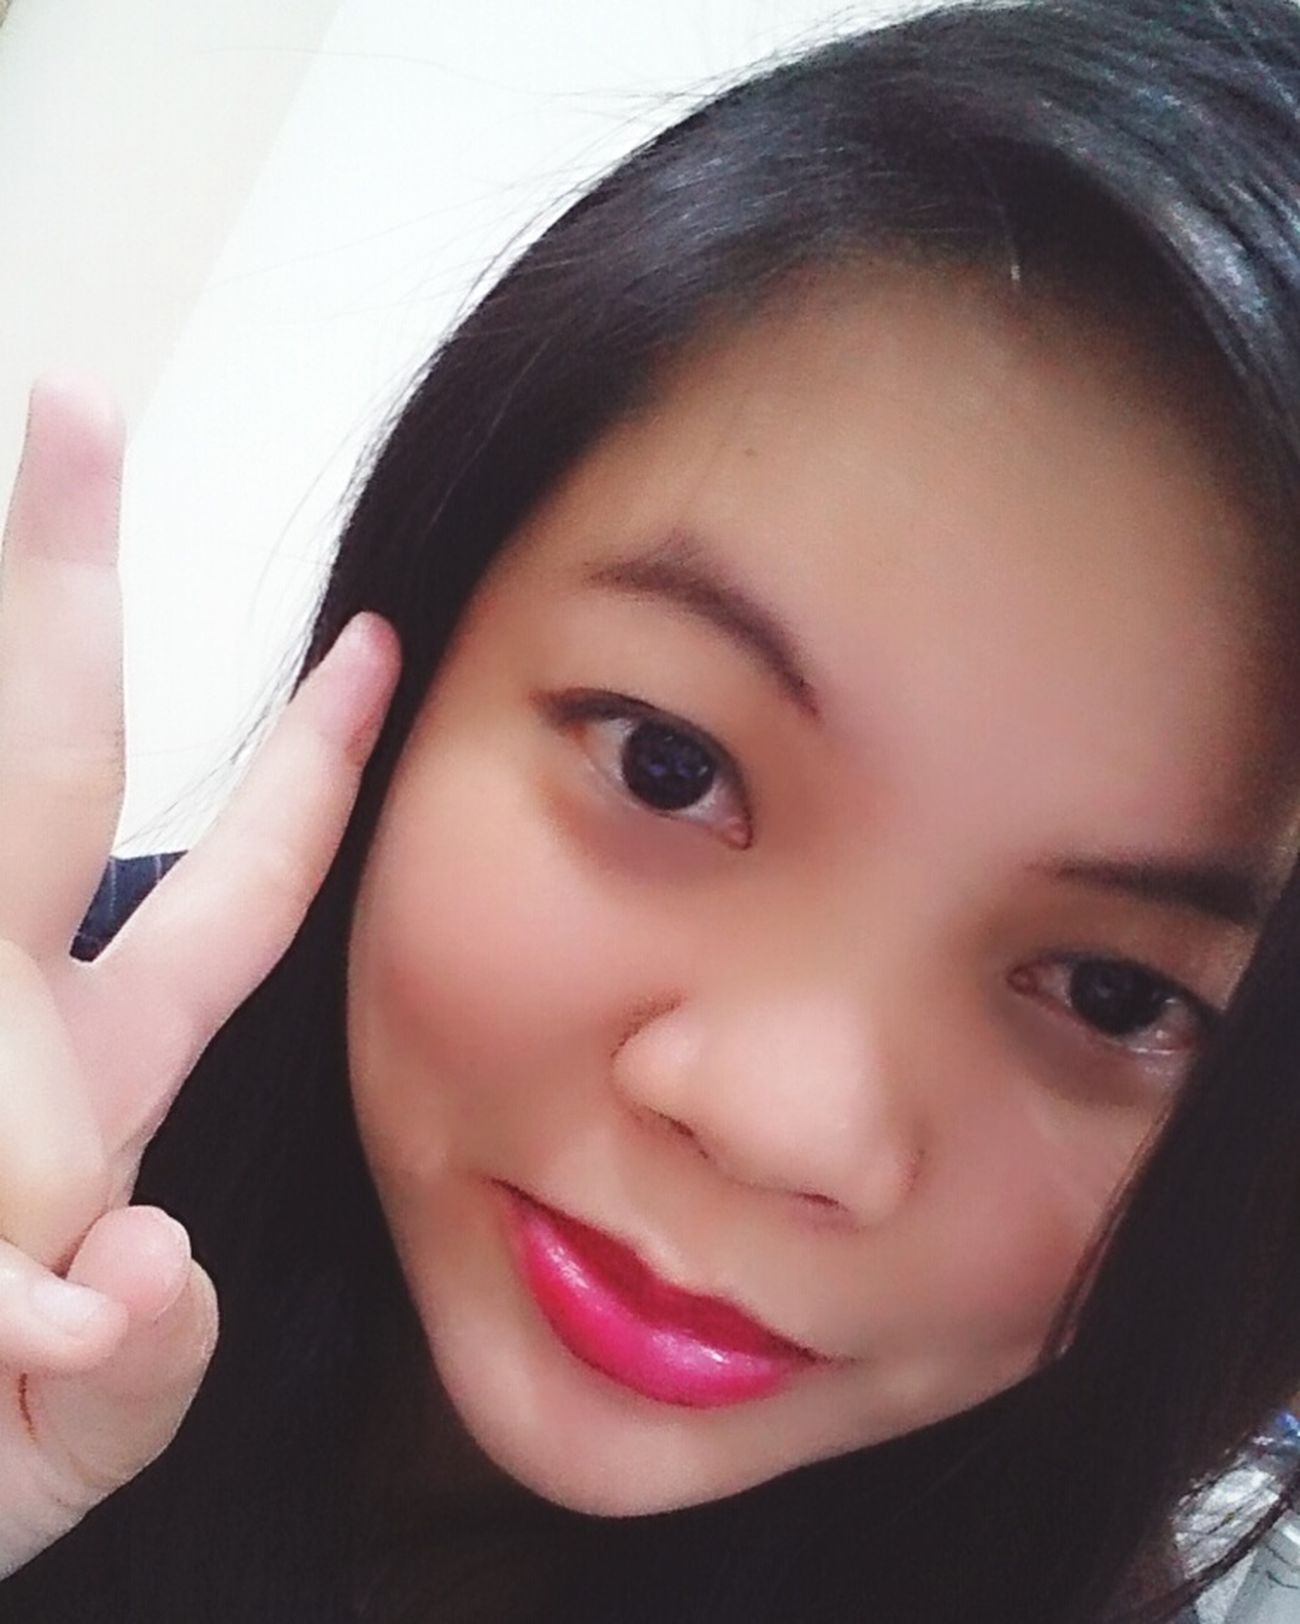 Selfie ✌ FaceTime Makeup ♥ Itsagirlthing Eyeemselfie LikeforlikeFreshface  Love ♥ Hotlook.♡♡